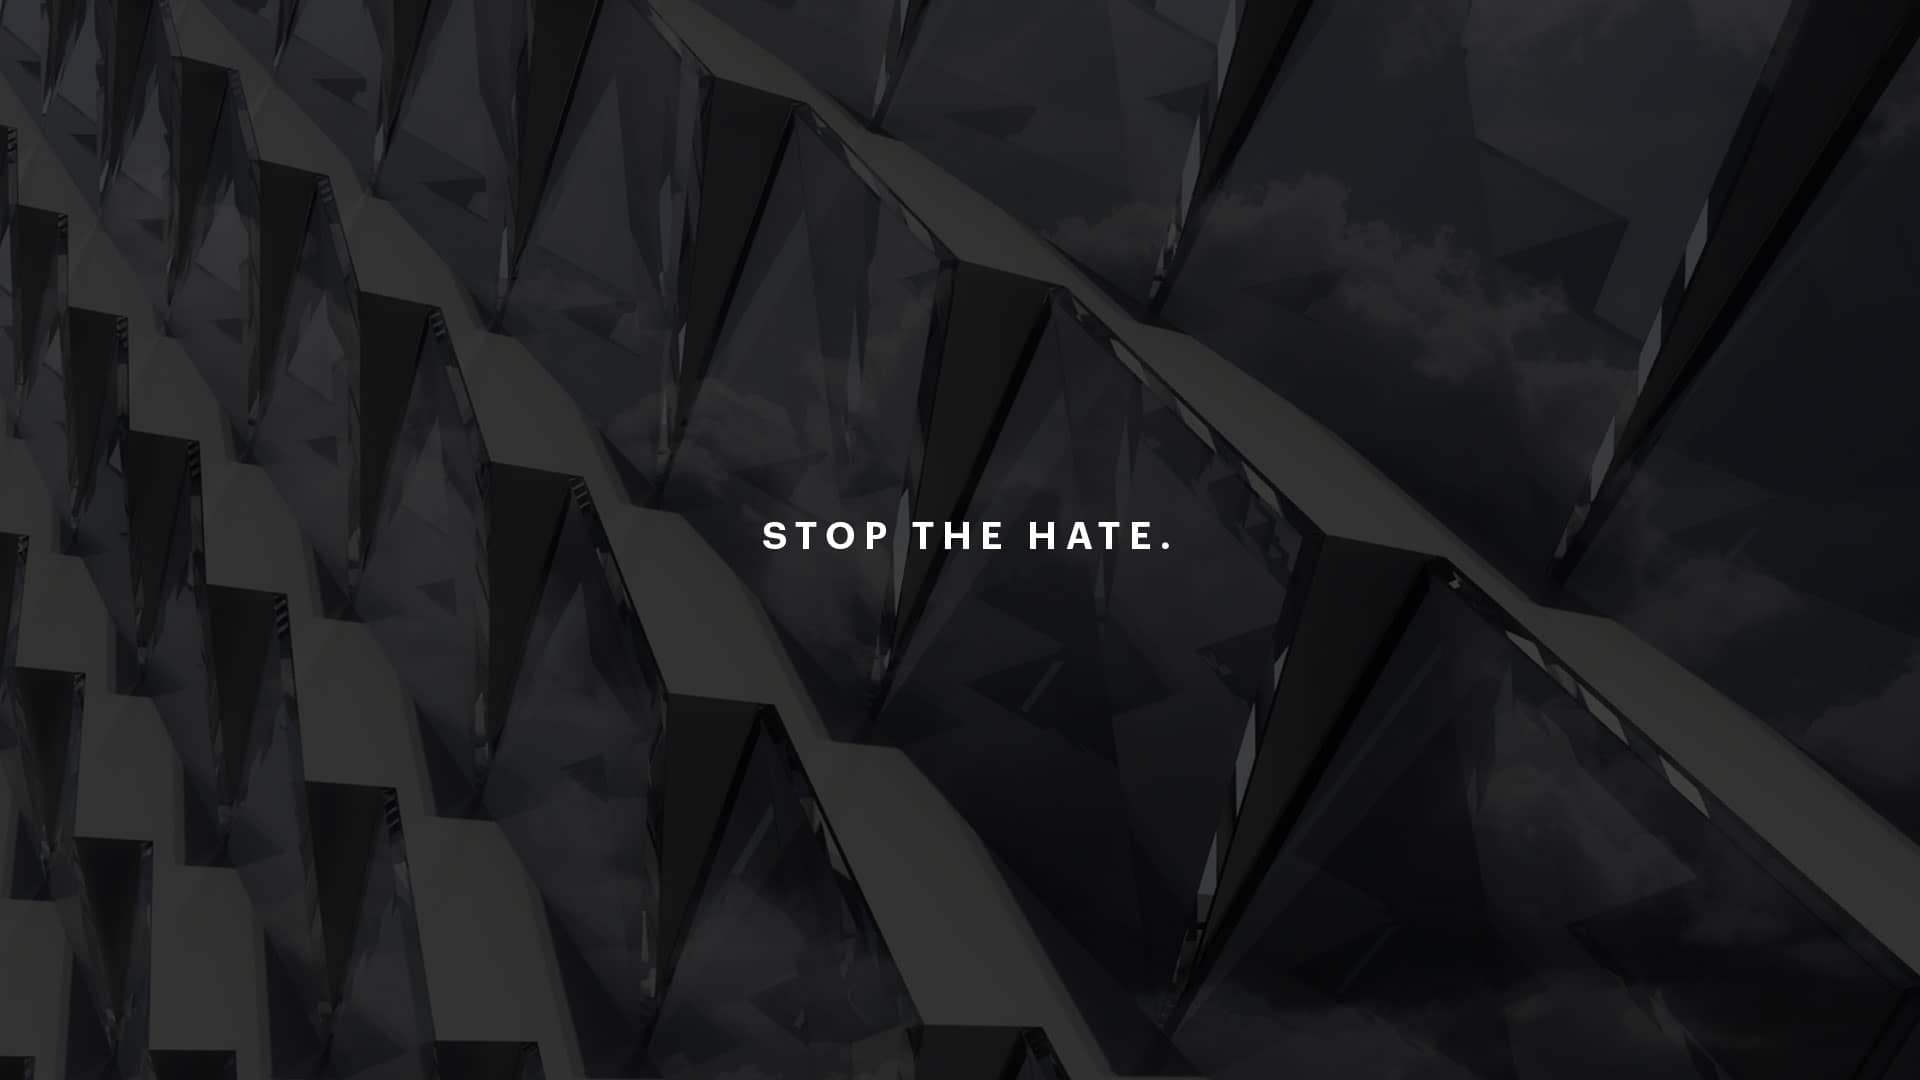 Hate, Violence Must Stop Now